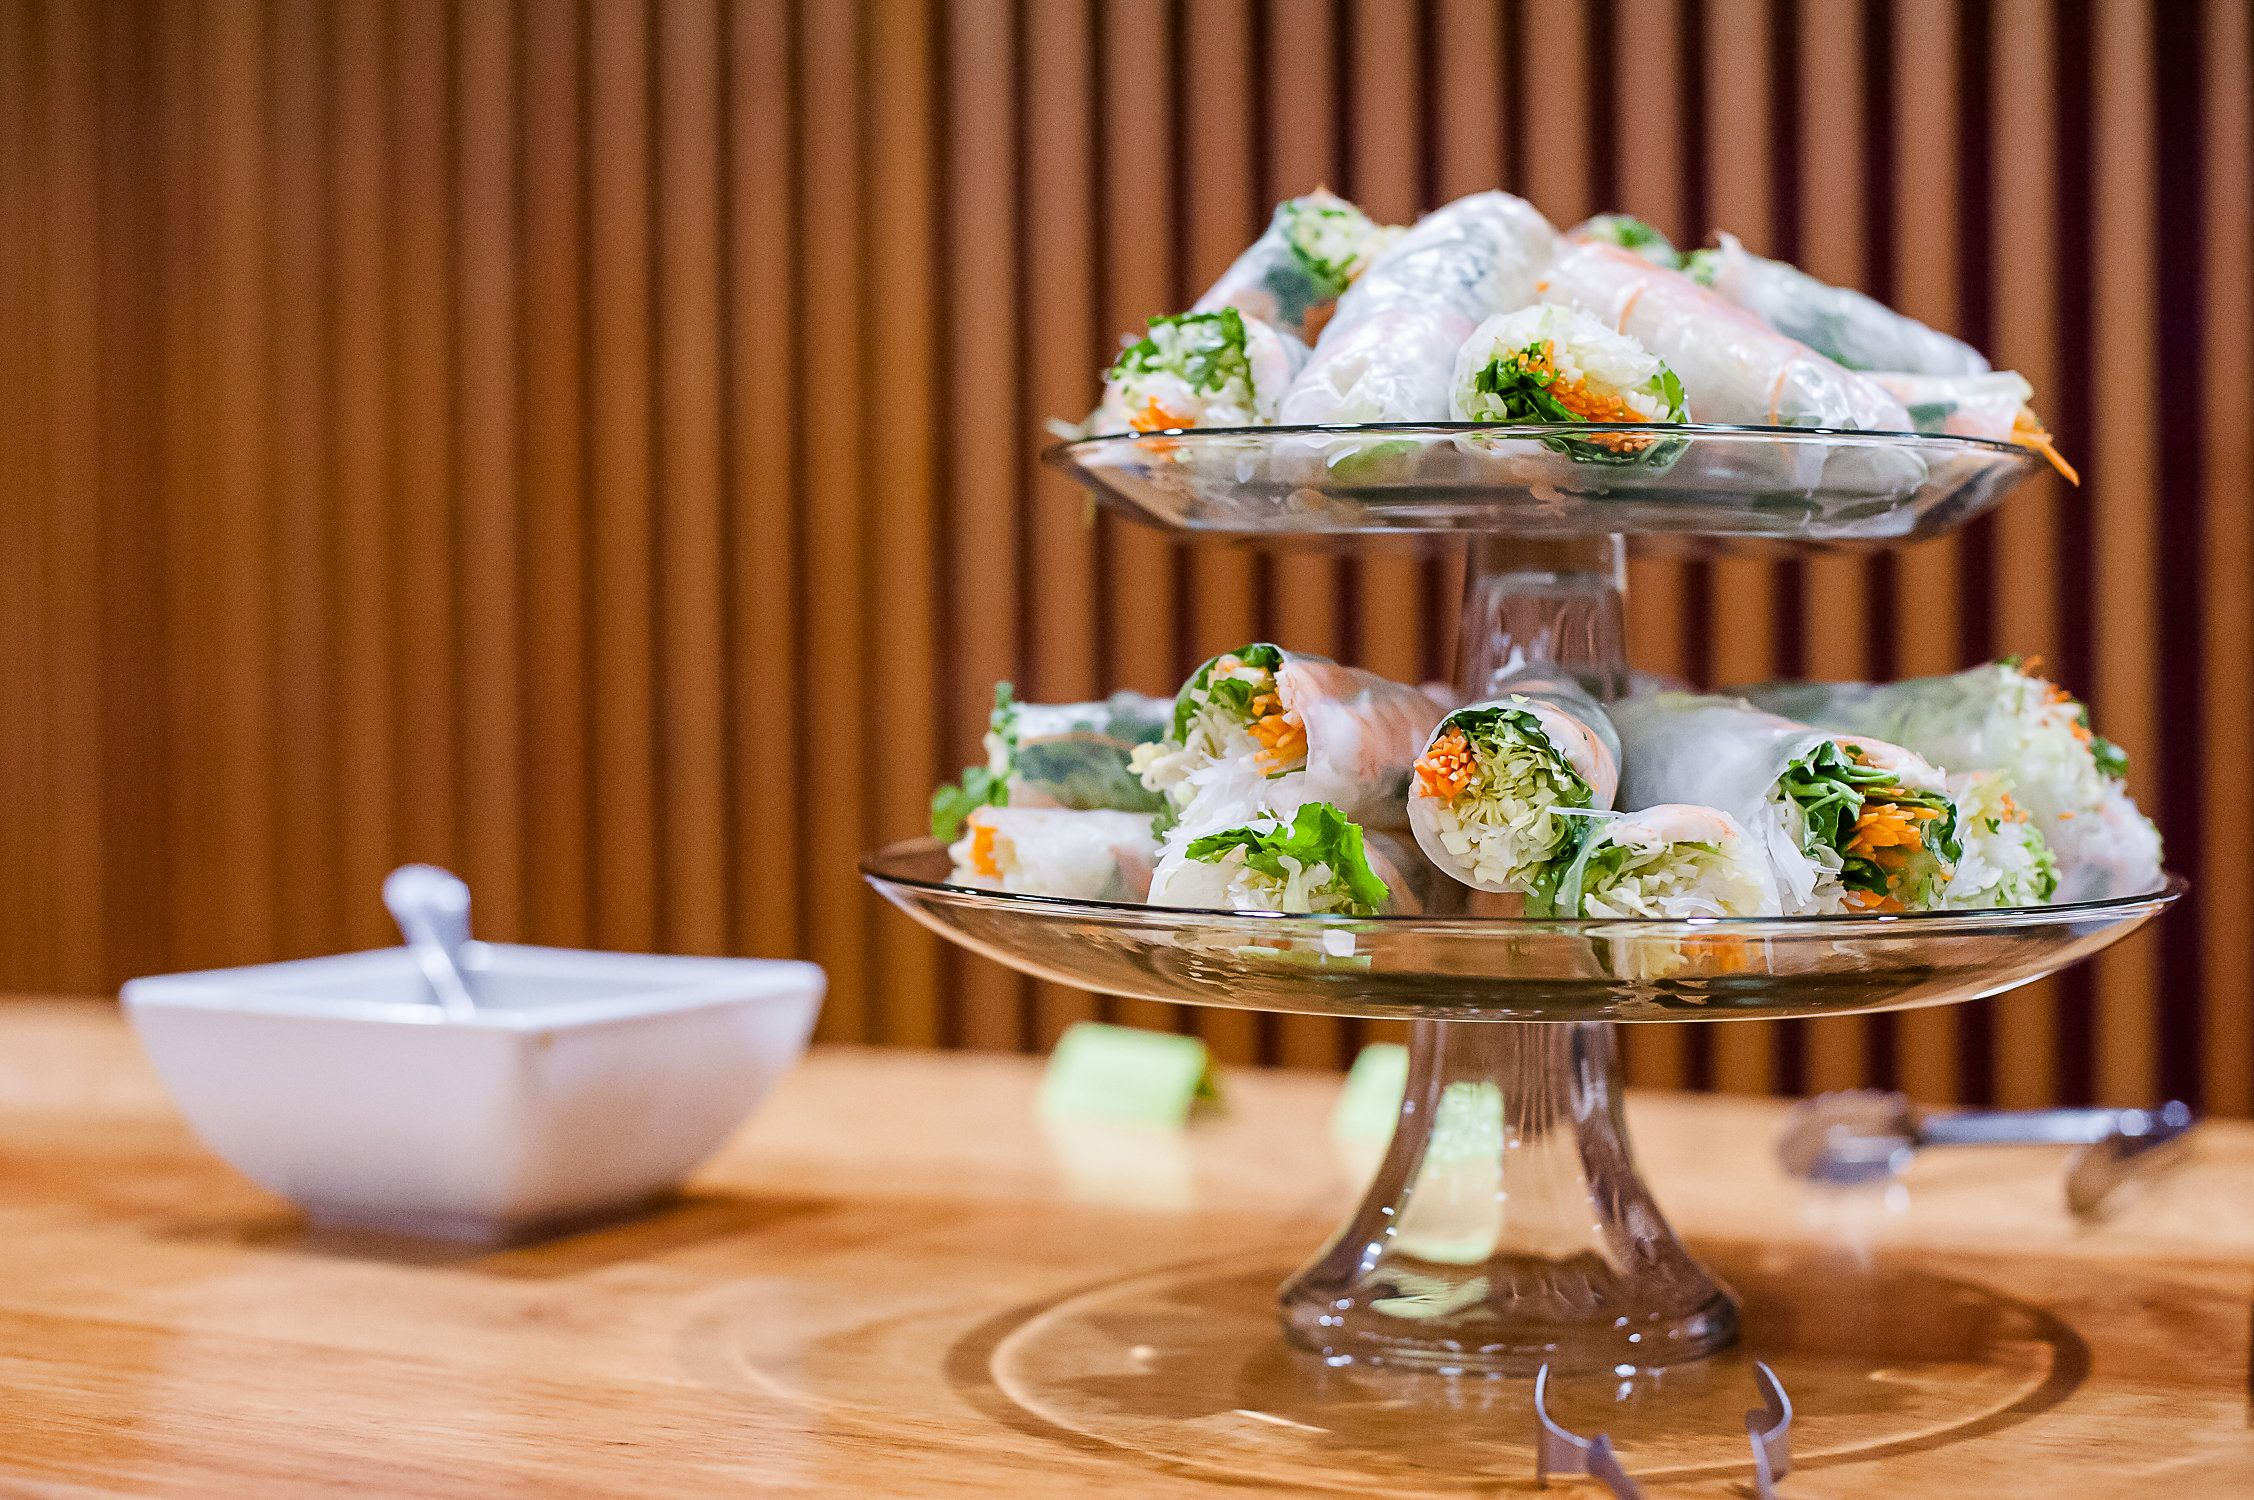 Spring rolls on a glass tray